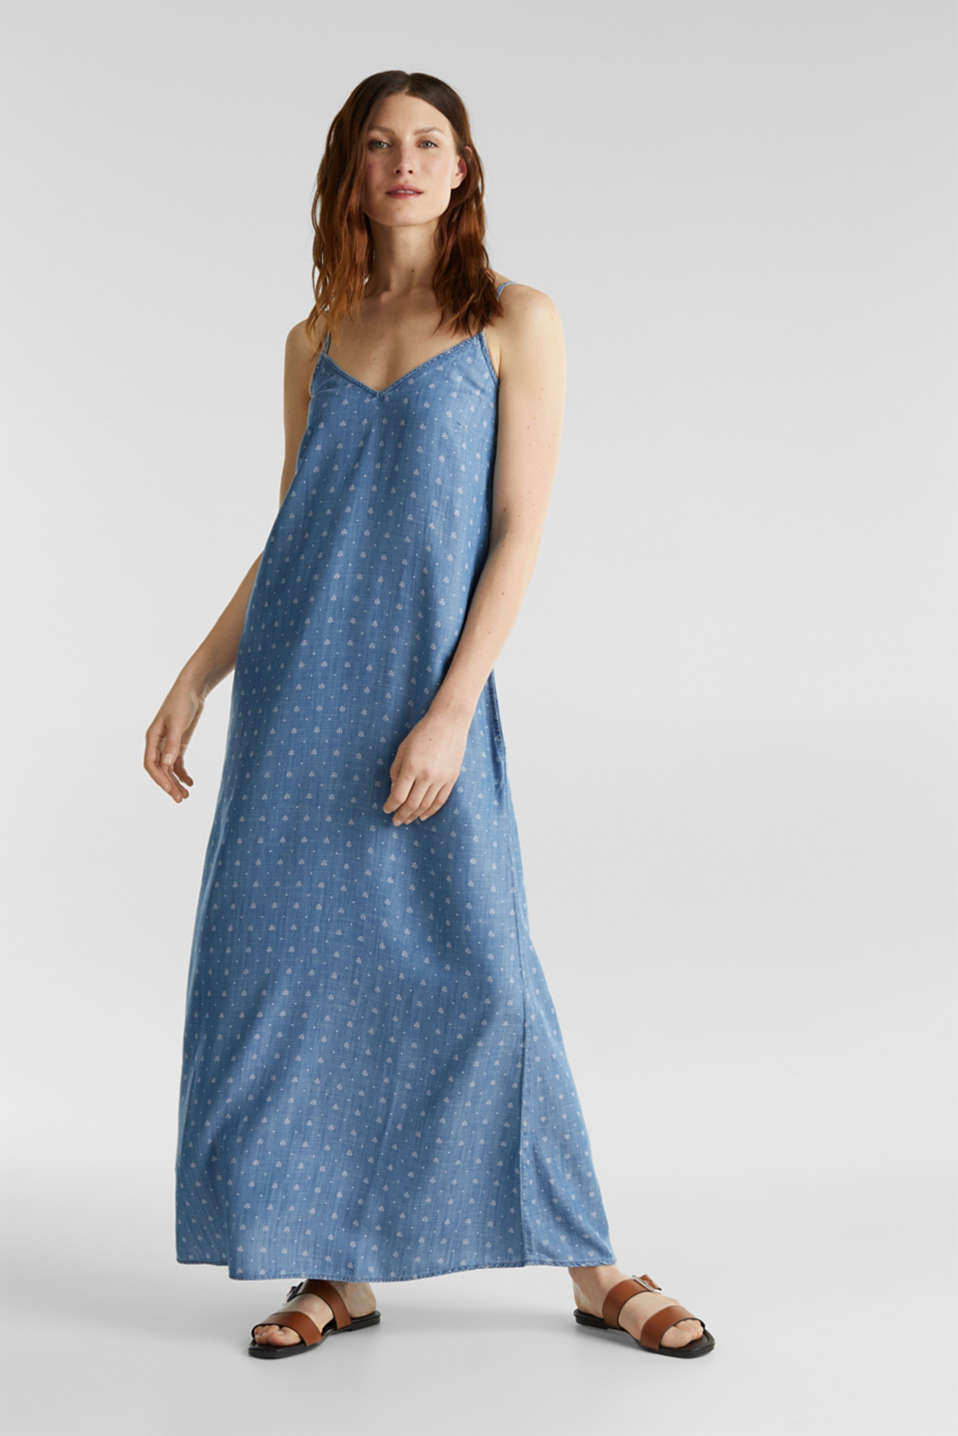 Esprit - Aus TENCEL™: Maxi-Kleid in Denim-Optik